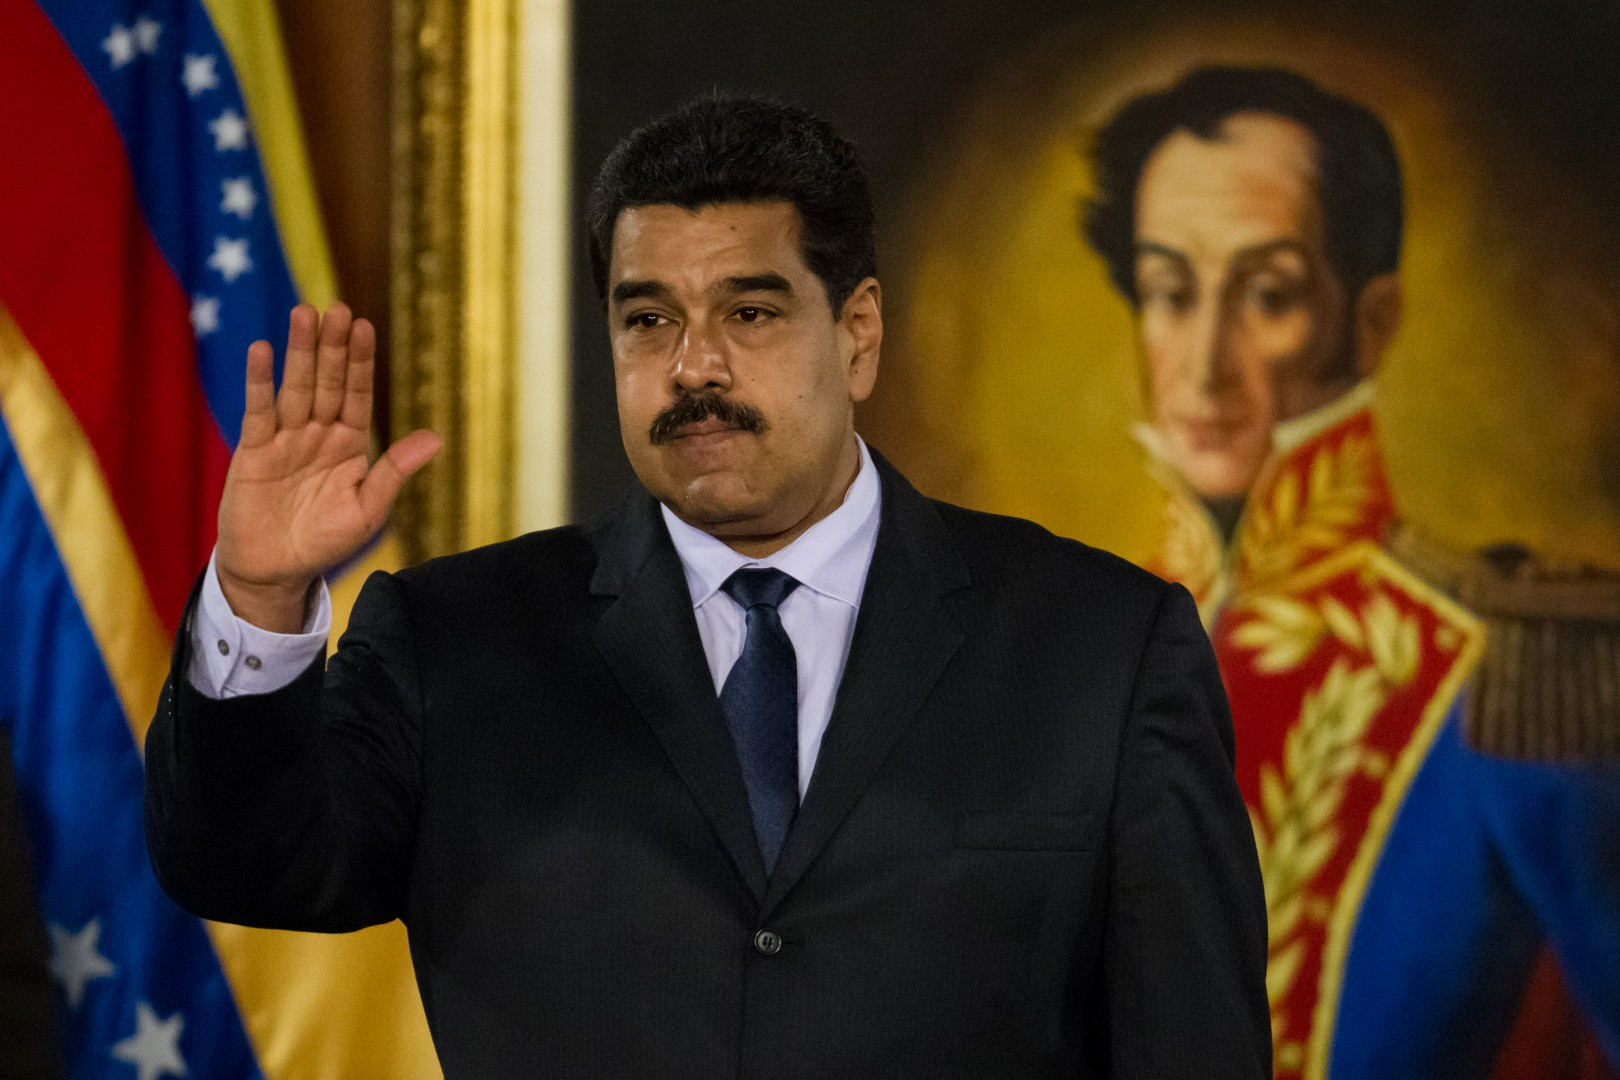 Venezuelan President Nicolas Maduro takes part at the installation of the Truth Commission on political violent events occured in the country during the last years in Caracas, Venezuela, 12 April 2016. The commission was proposed by the Venezuelan President at the begining of the year in order to stop the Amnesty Law proposed by the Parliament. EFE/Miguel Gutierrez